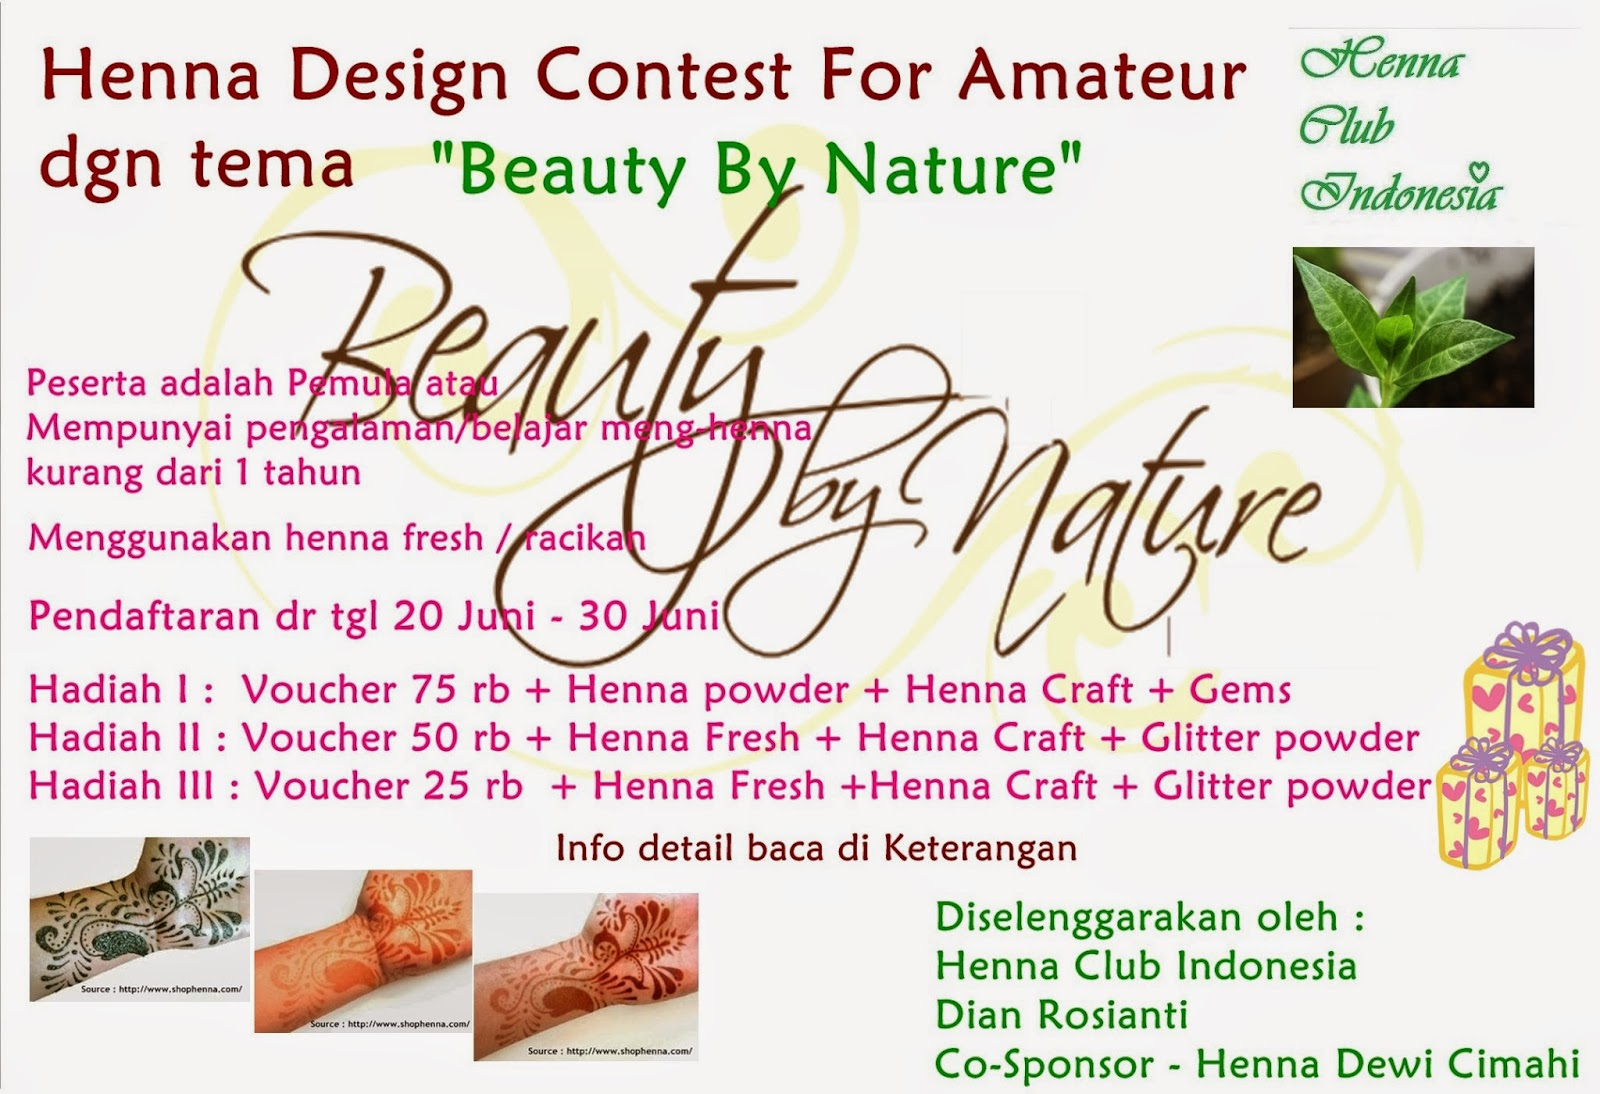 http://hennaclubindonesia.blogspot.in/2014/06/henna-design-contest-for-amateur-dgn.html